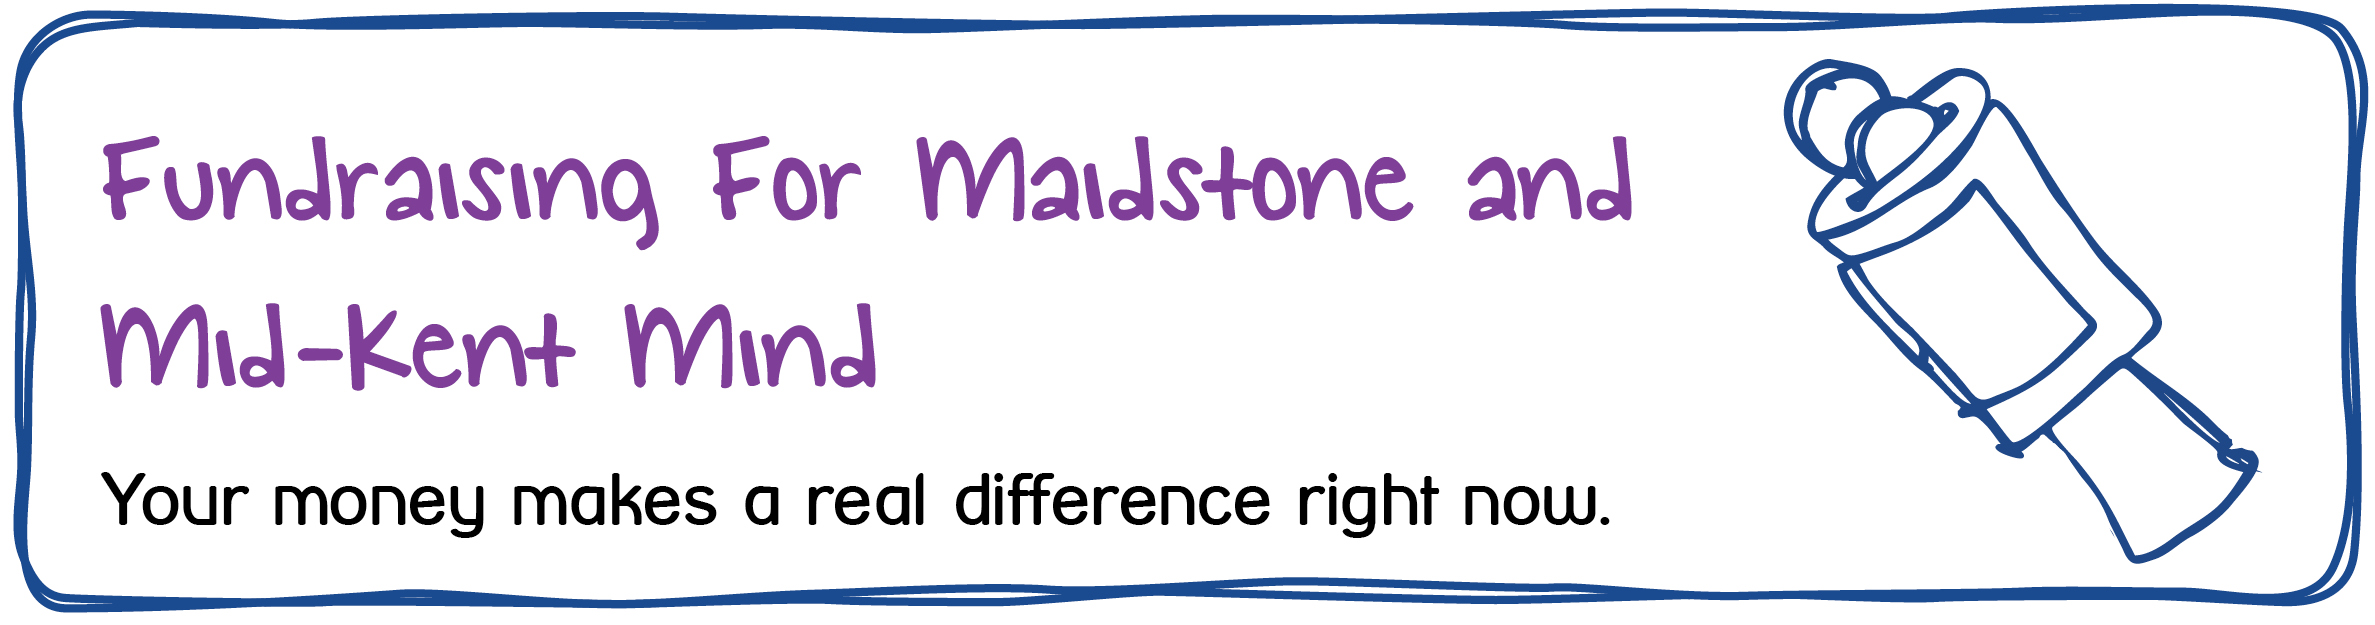 Fundraising for Maidstone and Mid-Kent Mind. Your money makes a real difference right now.